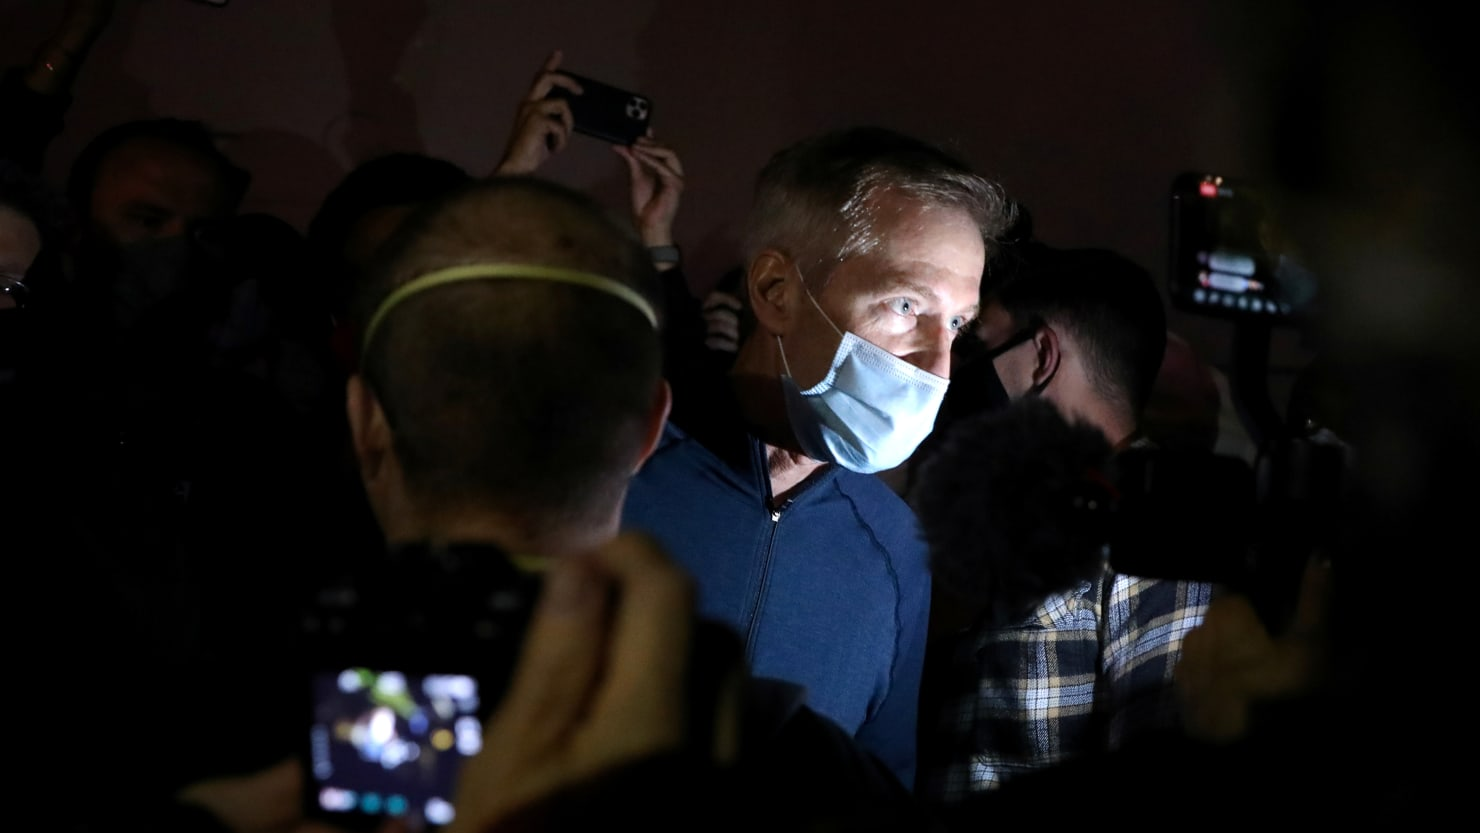 Portland Mayor Says He Blasted an Unmasked Man With Pepper Spray